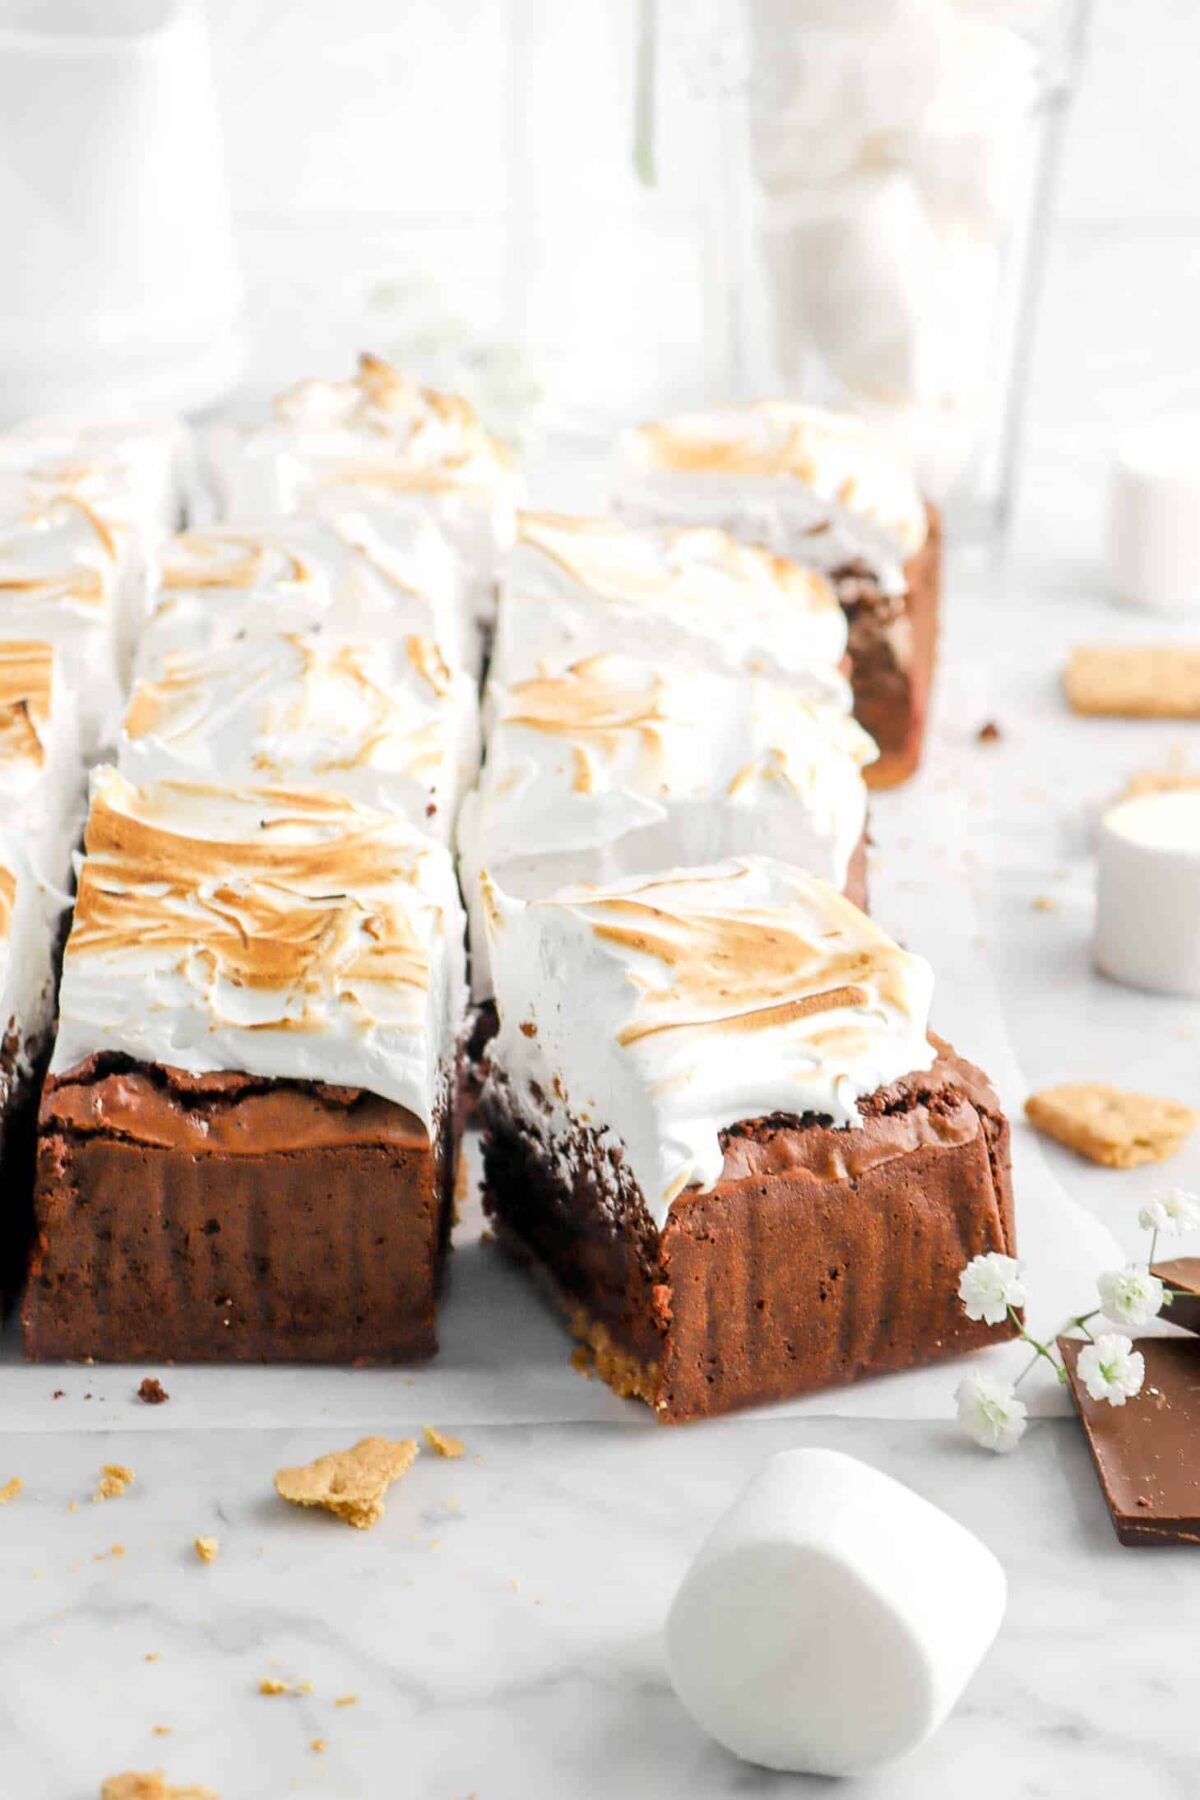 s'mores brownies on parchment with marshmallows, flowers, and graham cracker crumbs